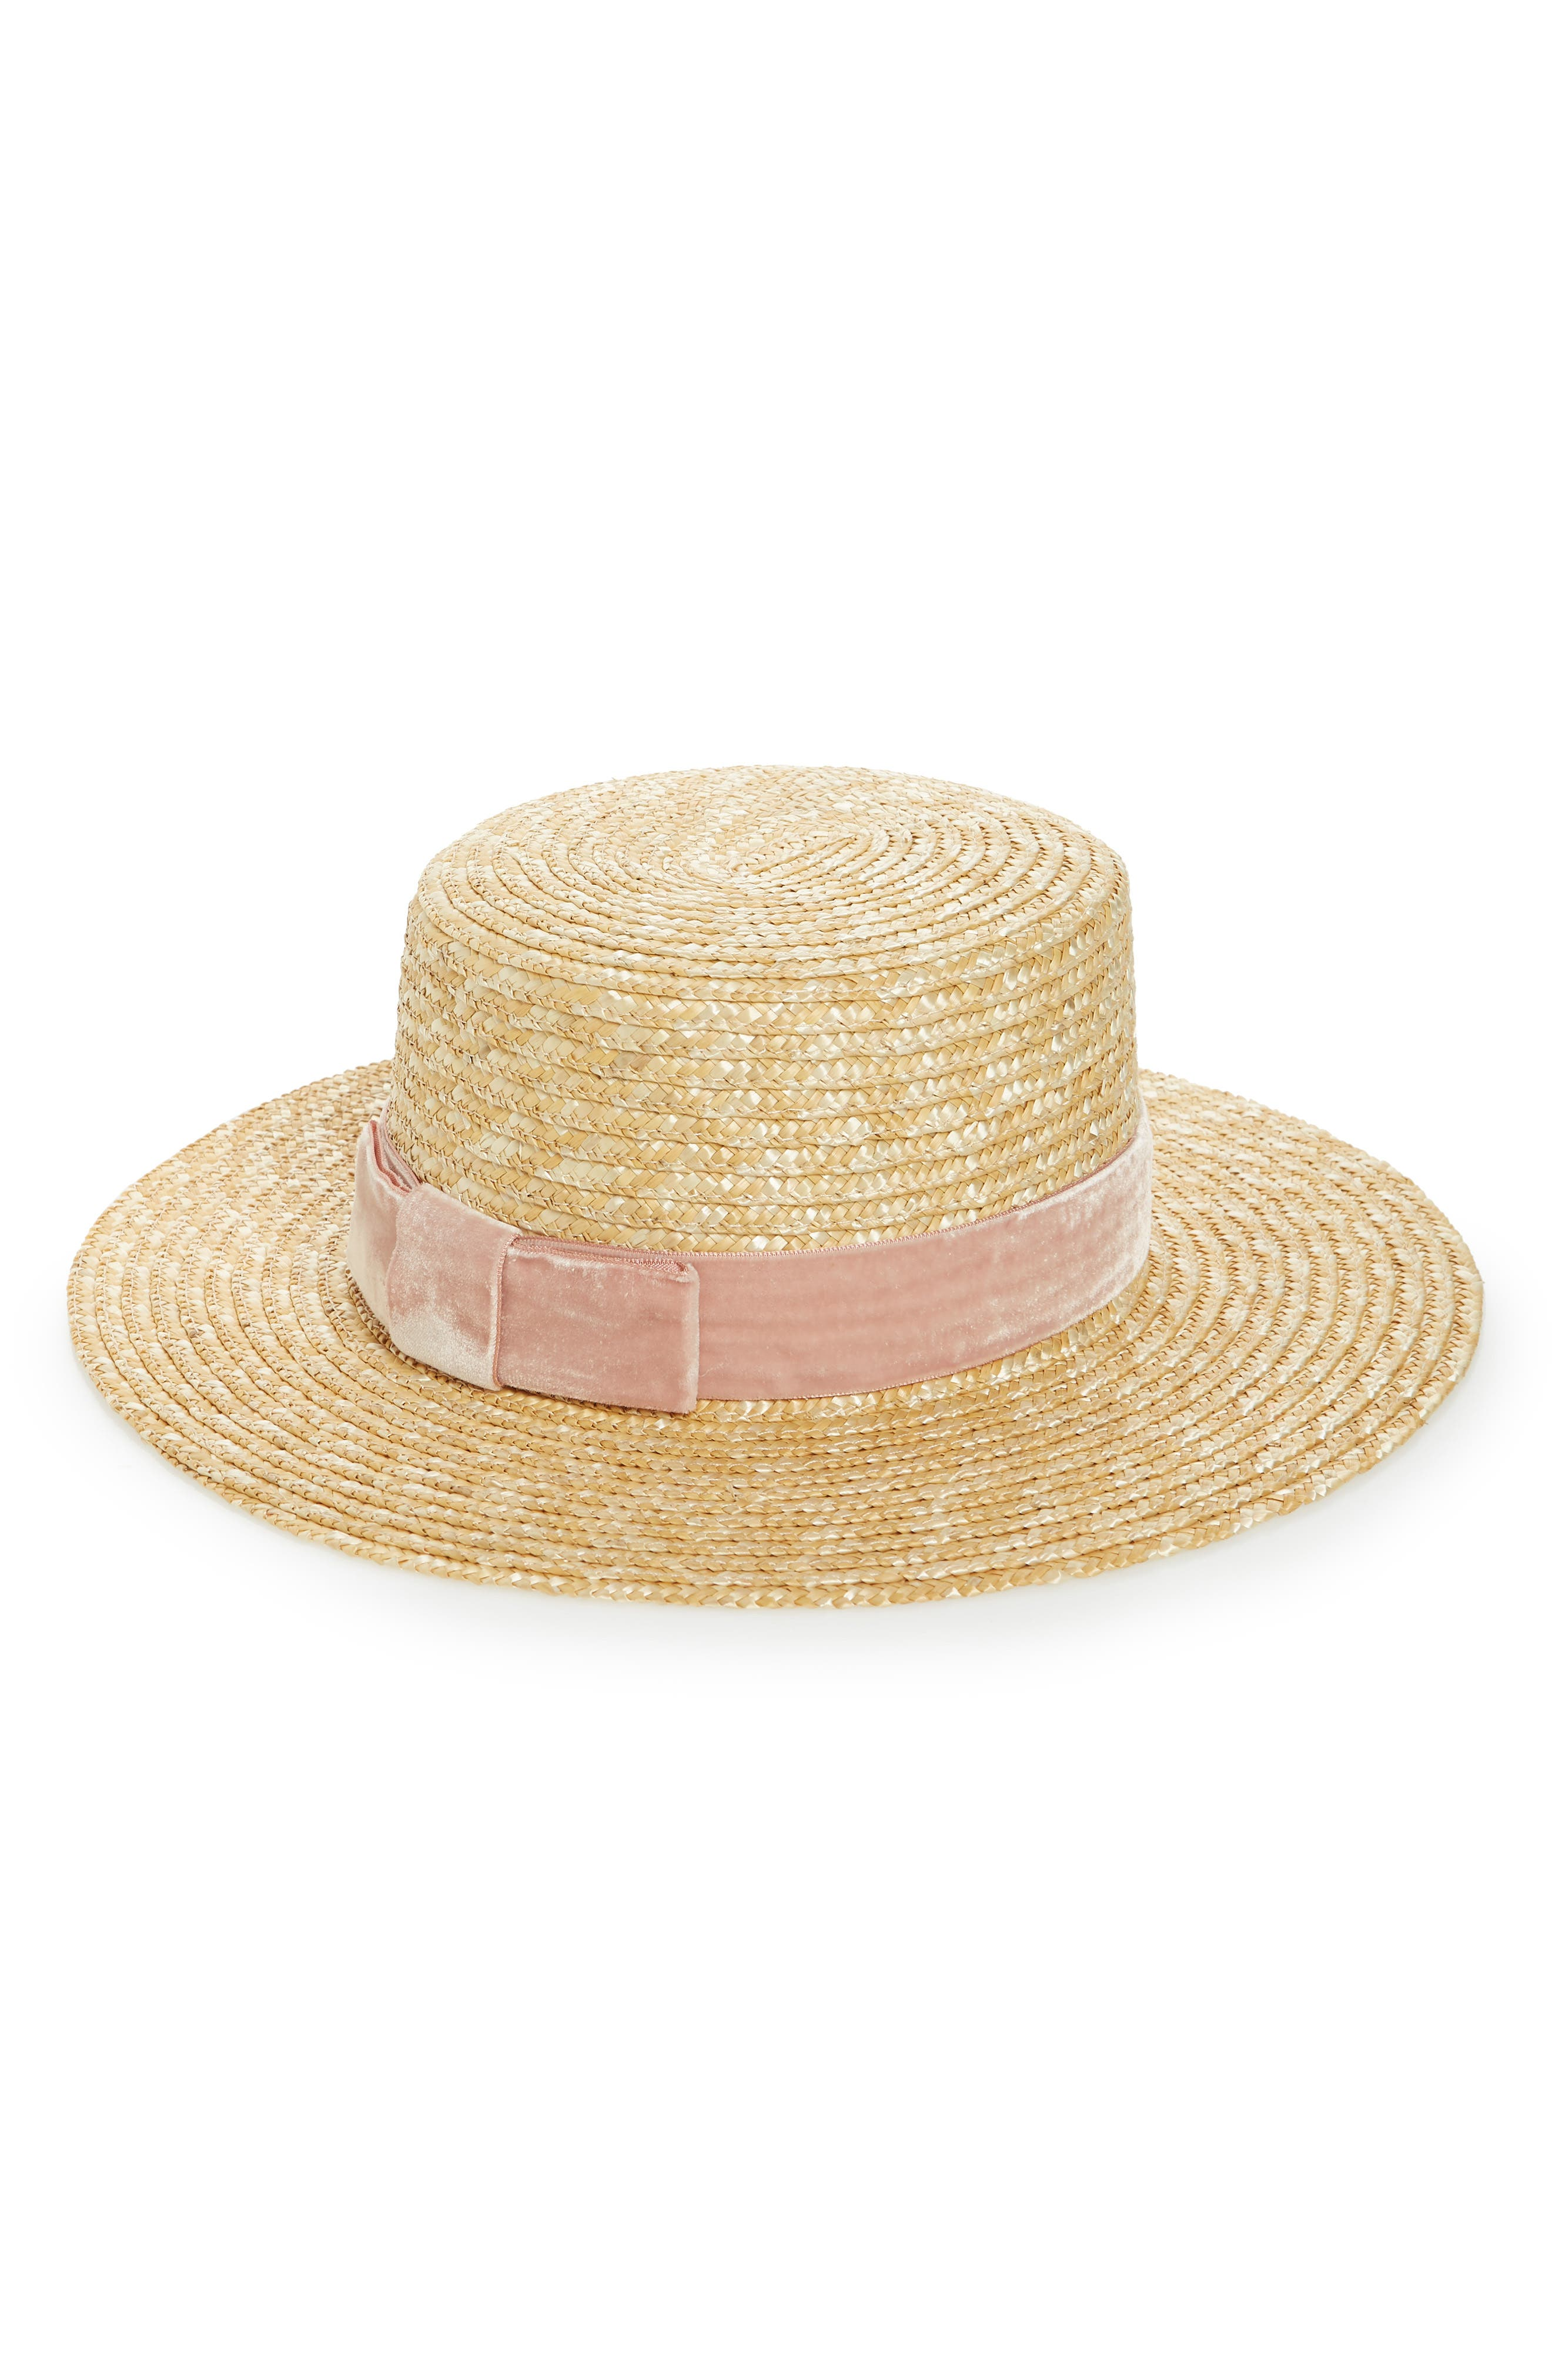 Pink Velour Straw Hat,                             Alternate thumbnail 2, color,                             Pink/ Natural